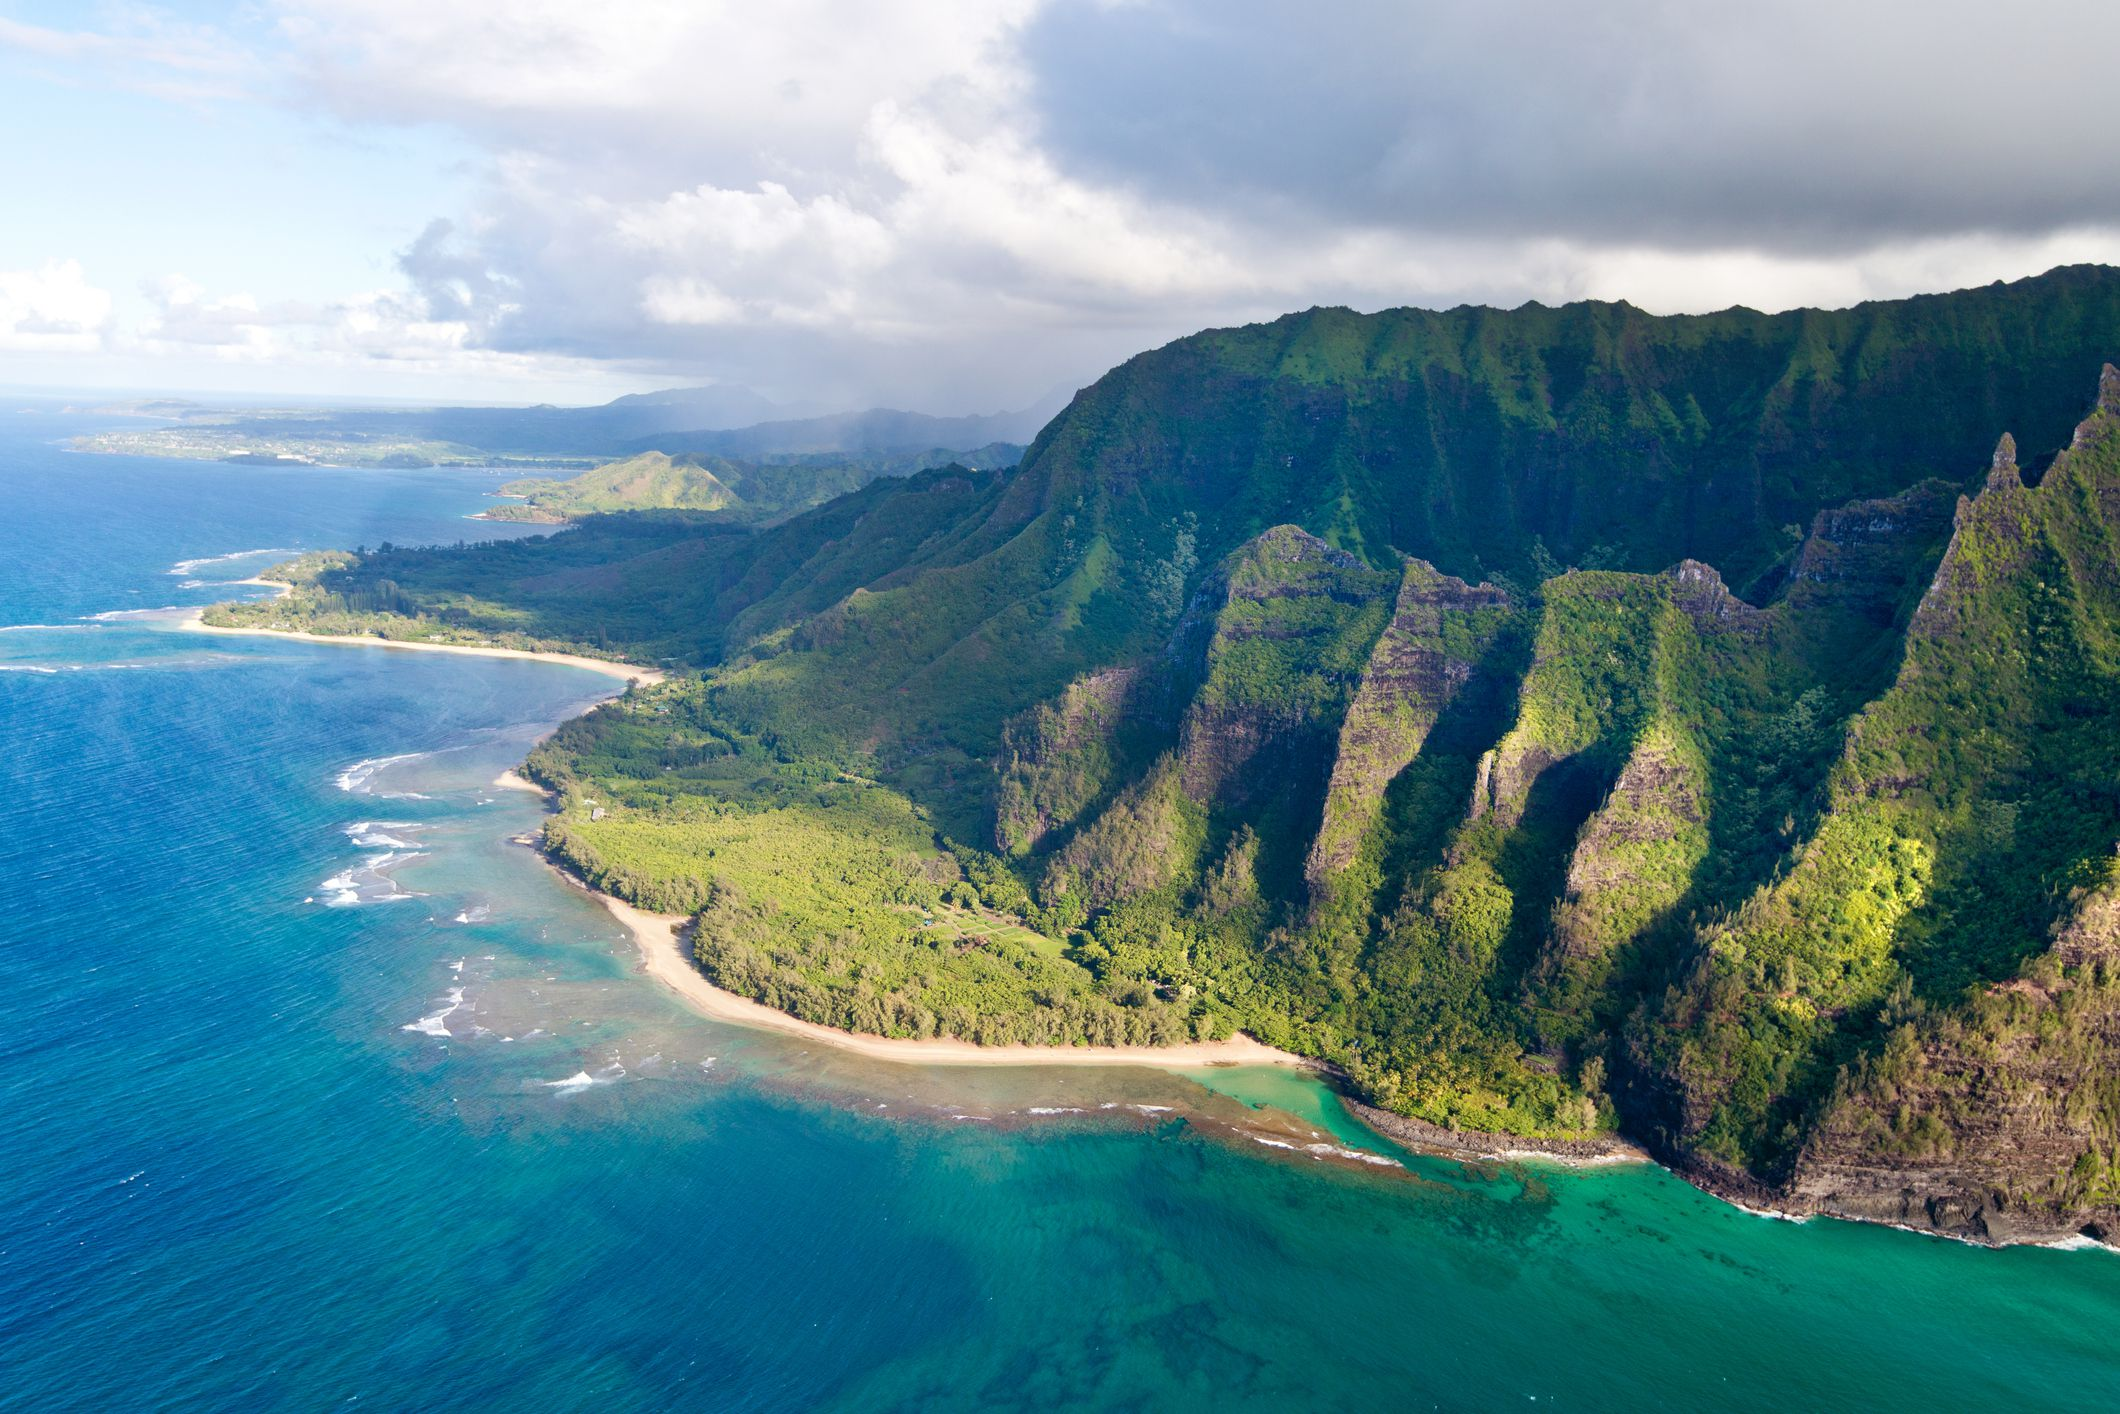 State Of Hawaii Island Names Nicknames And Geography - Landforms in hawaii